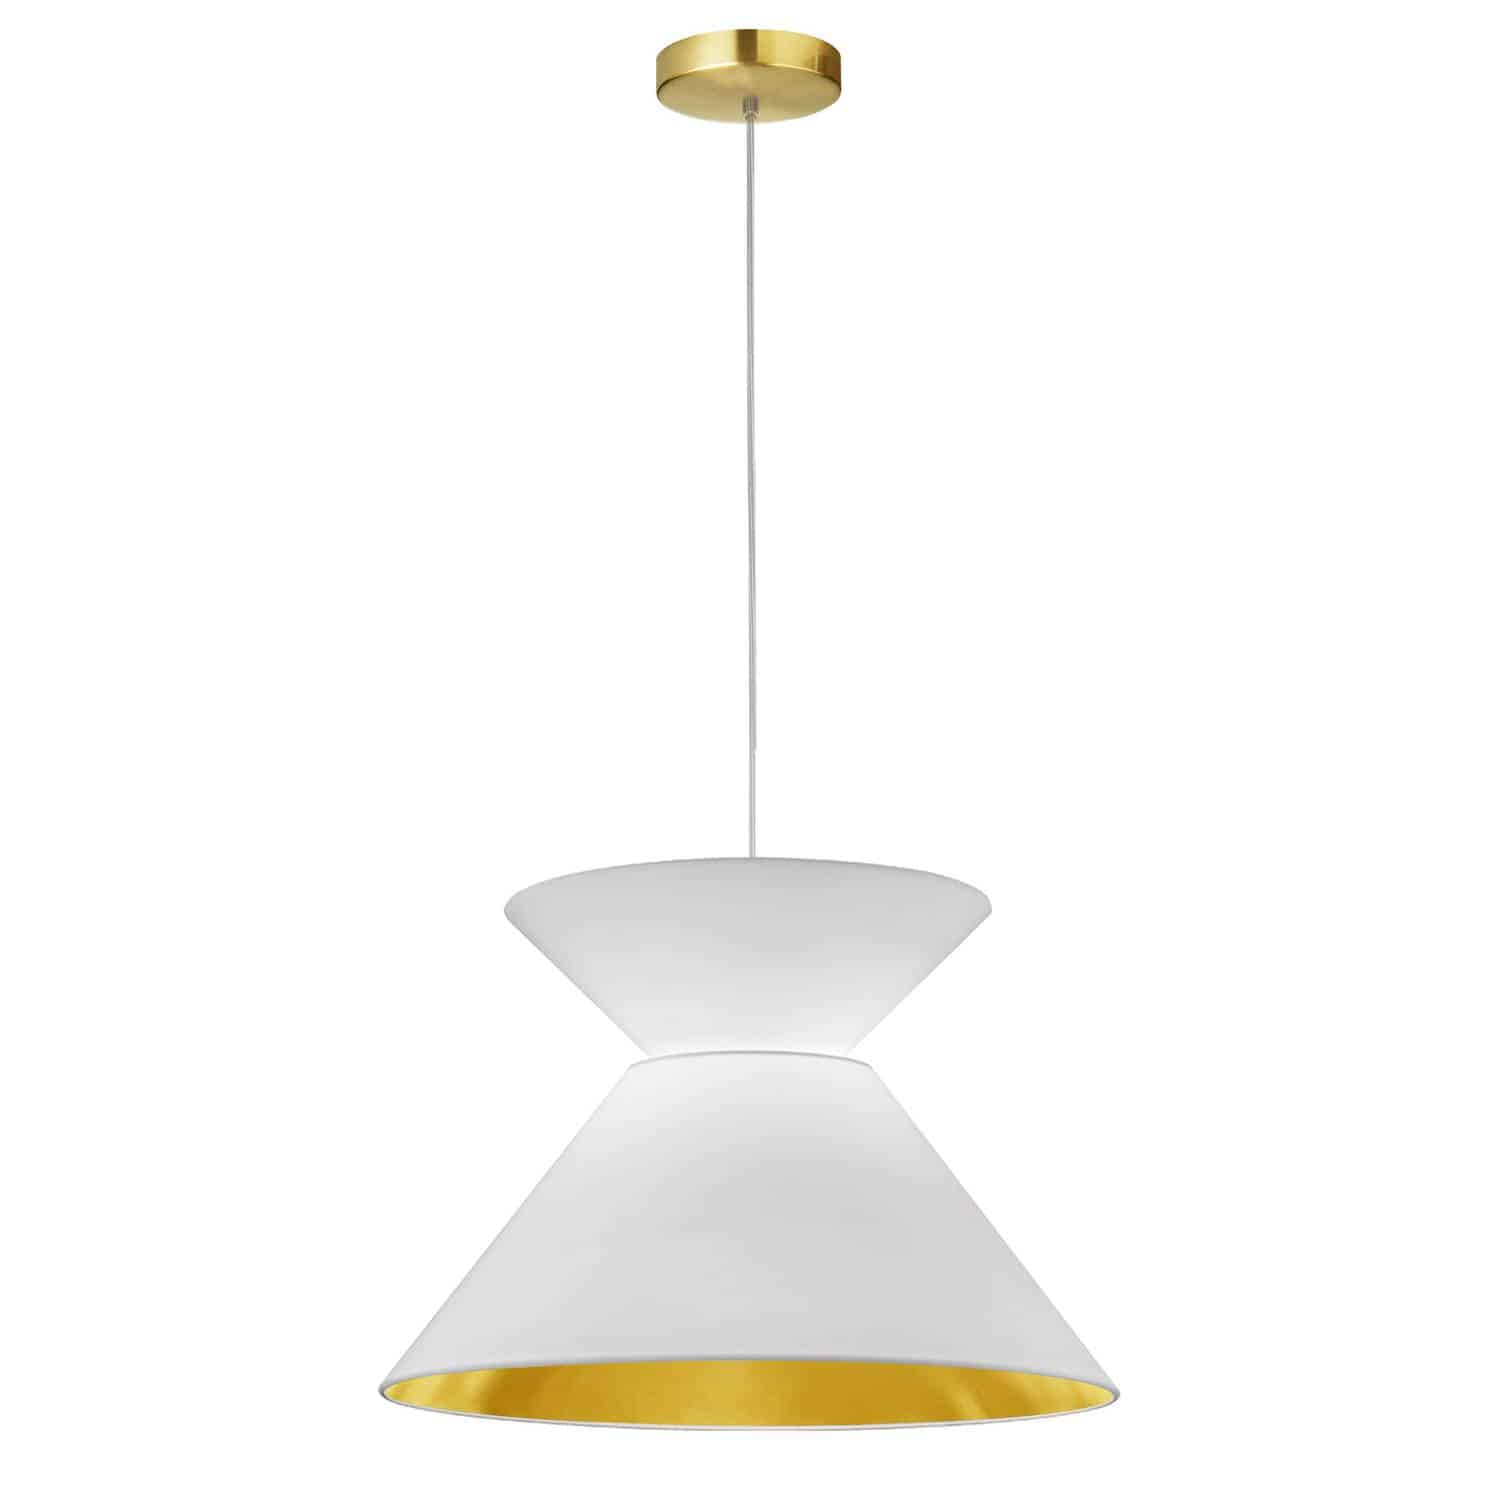 1 Light Patricia Pendant, Aged Brass with White/Gold Shade